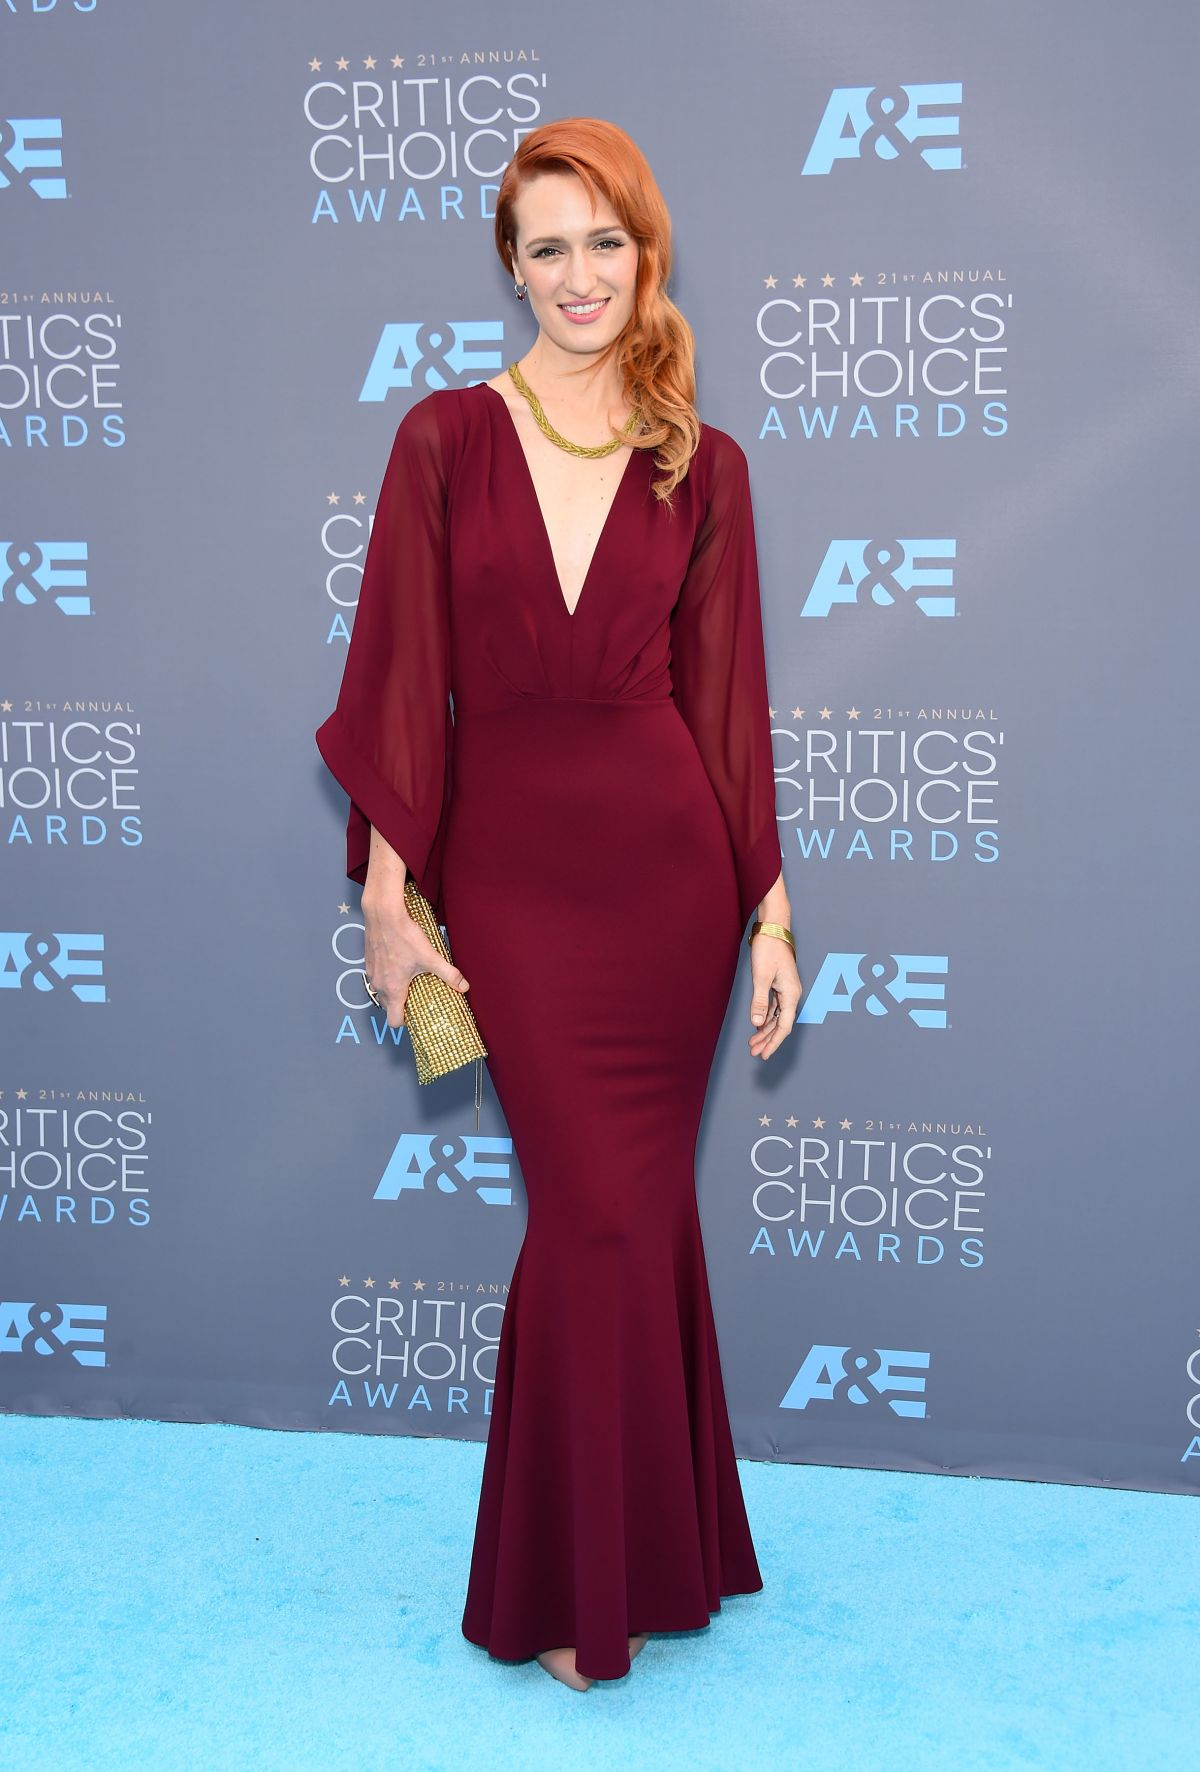 BREEDA WOOL at Critics's Choice Awards 2016 in Santa Monica 01/17/2016